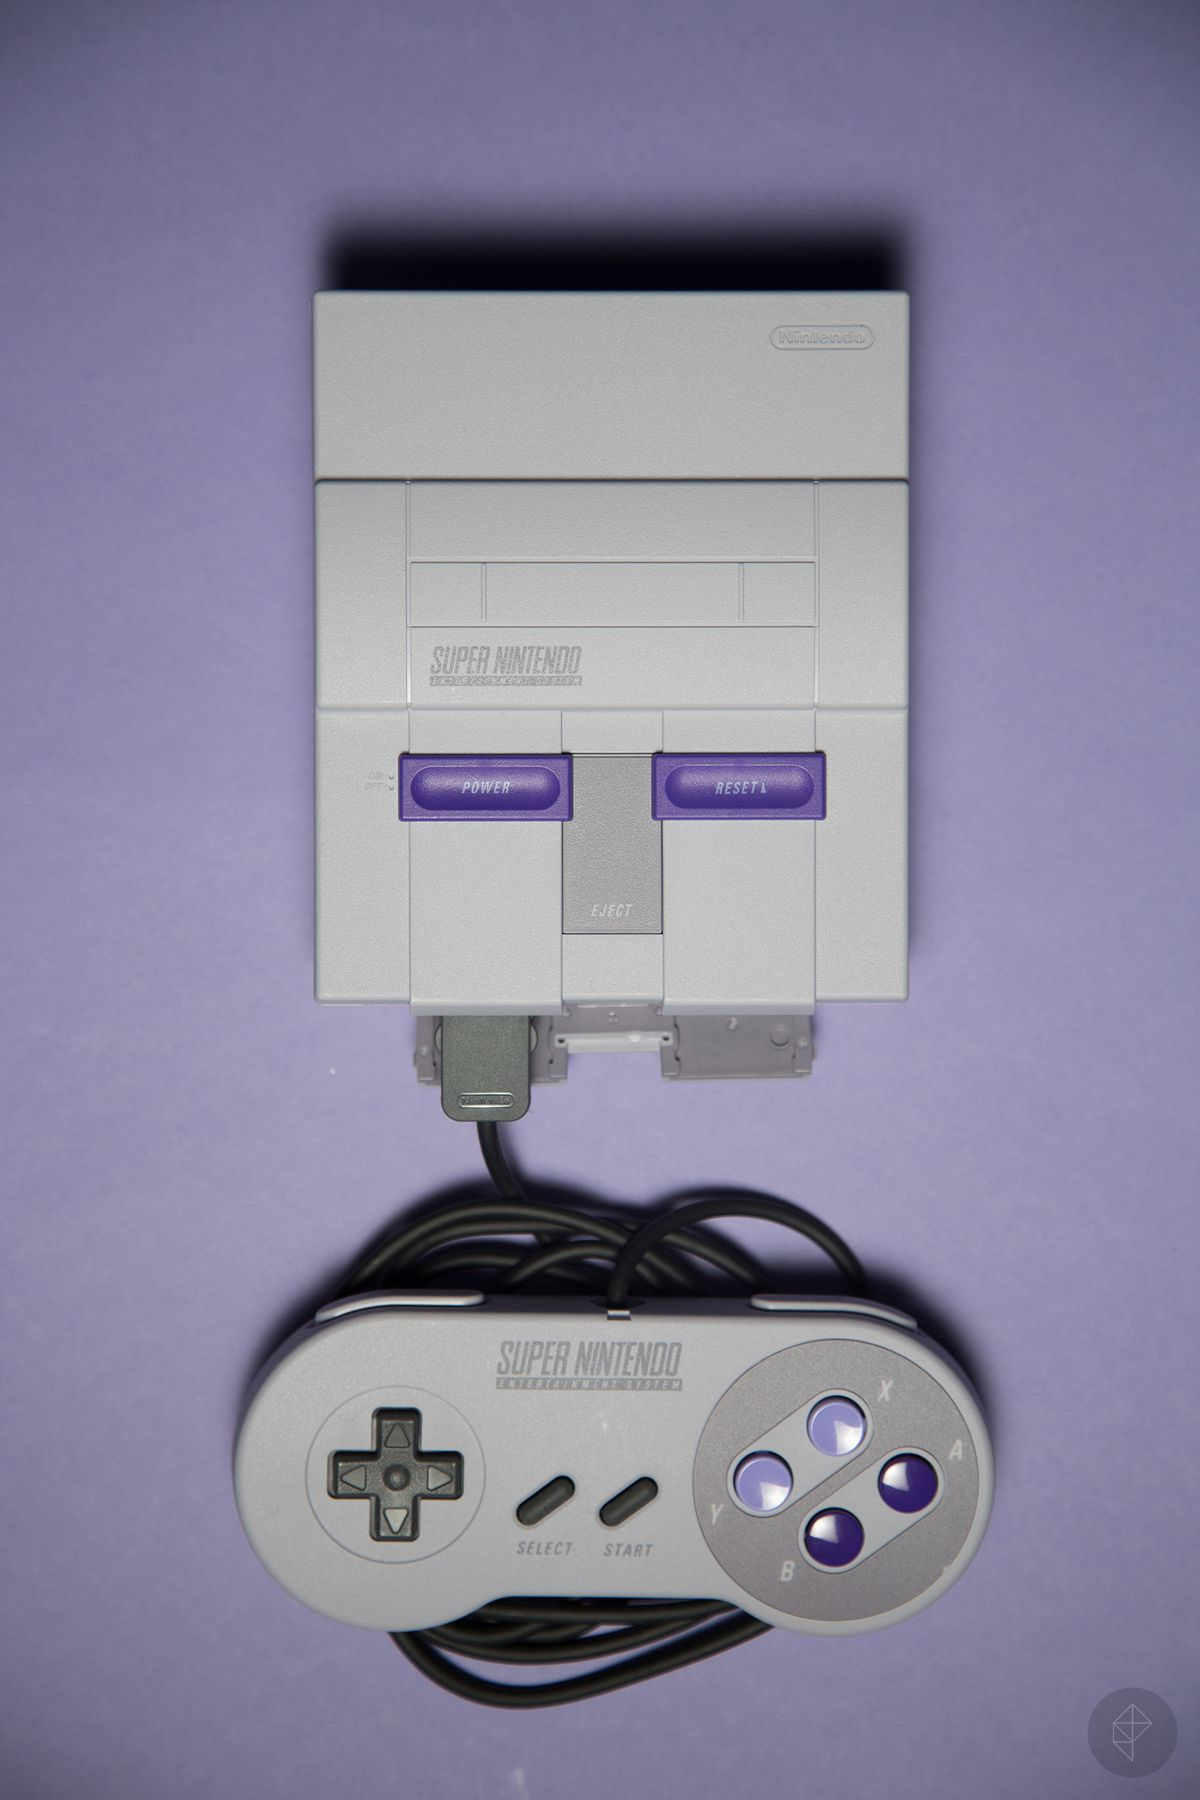 Snes classic reset | PSA: You Can Reset Your NES Classic Without